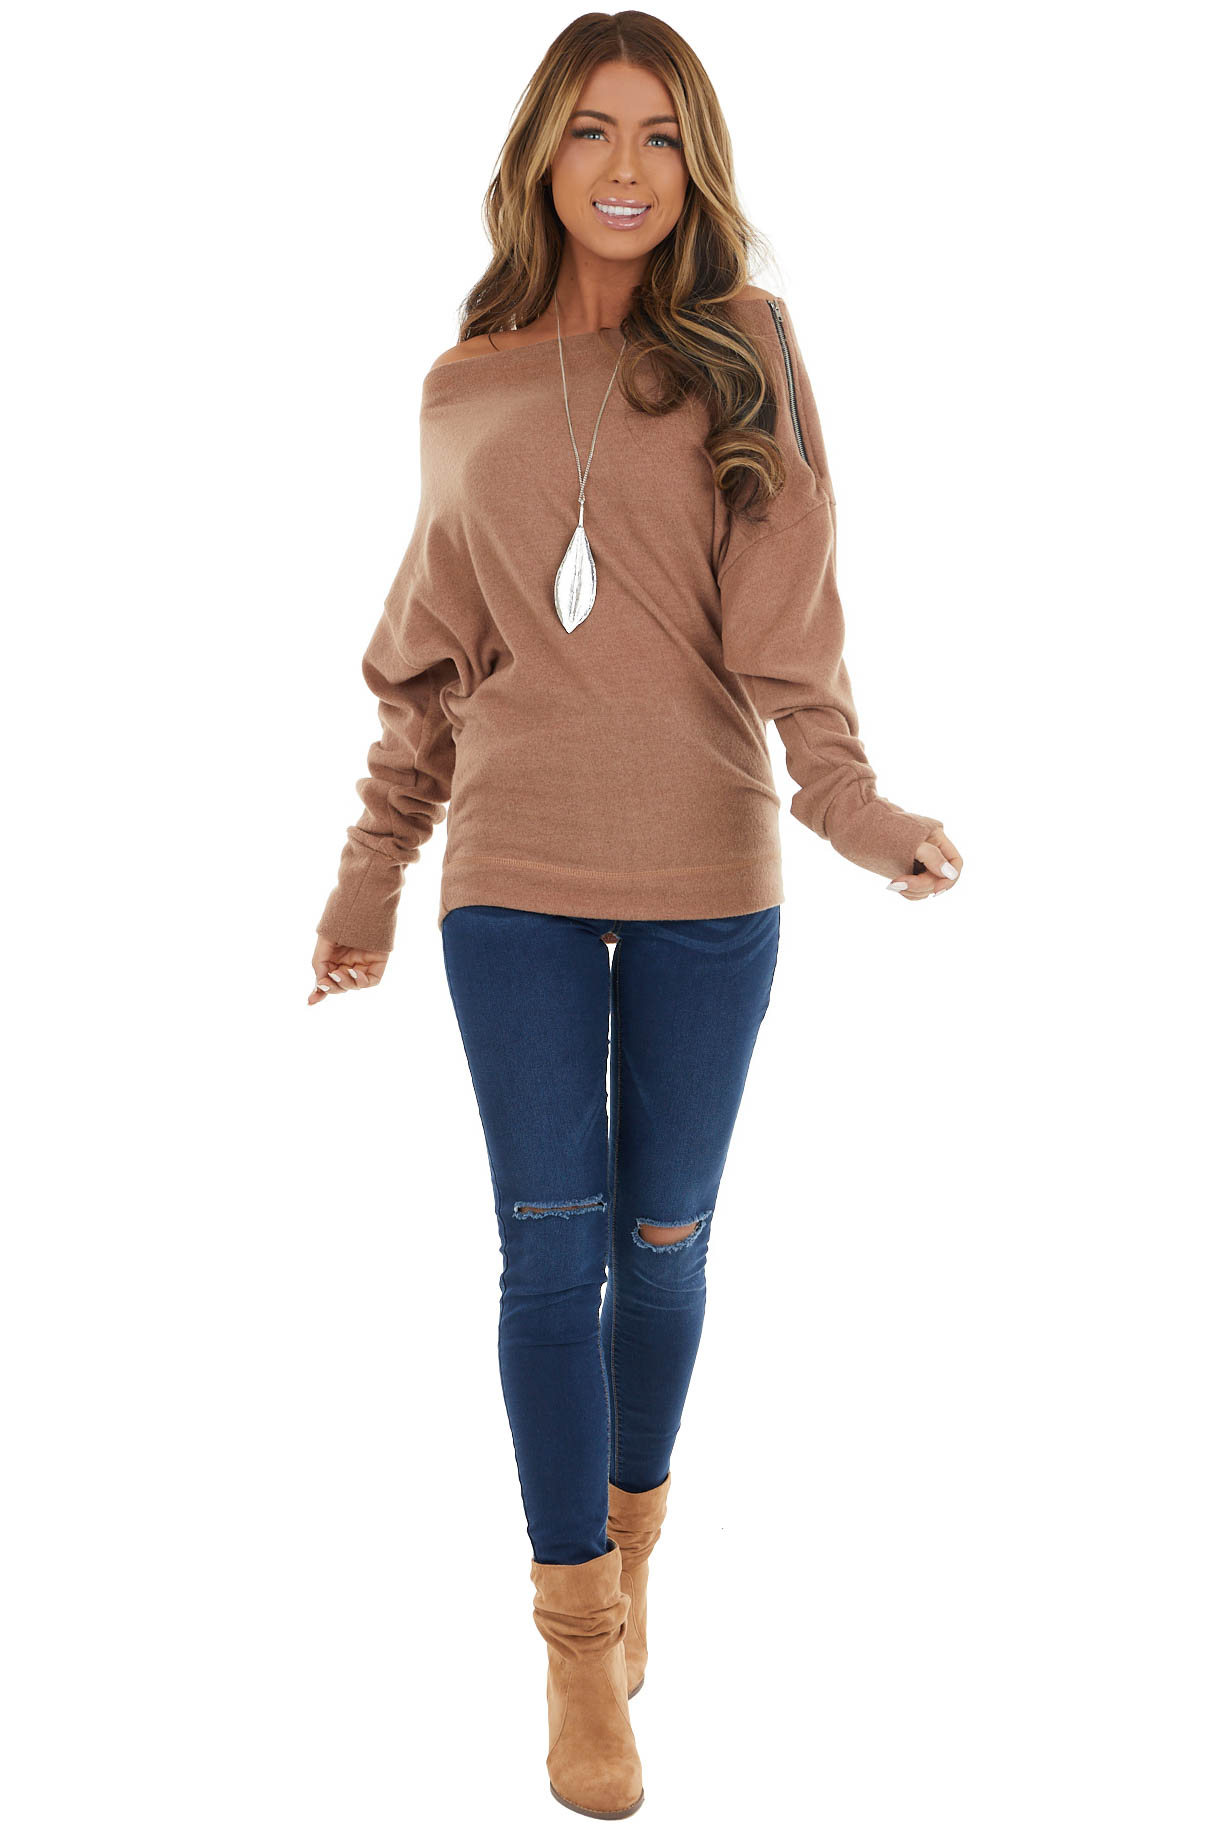 Camel Long Dolman Sleeve Boat Neck Top with Zipper Detail